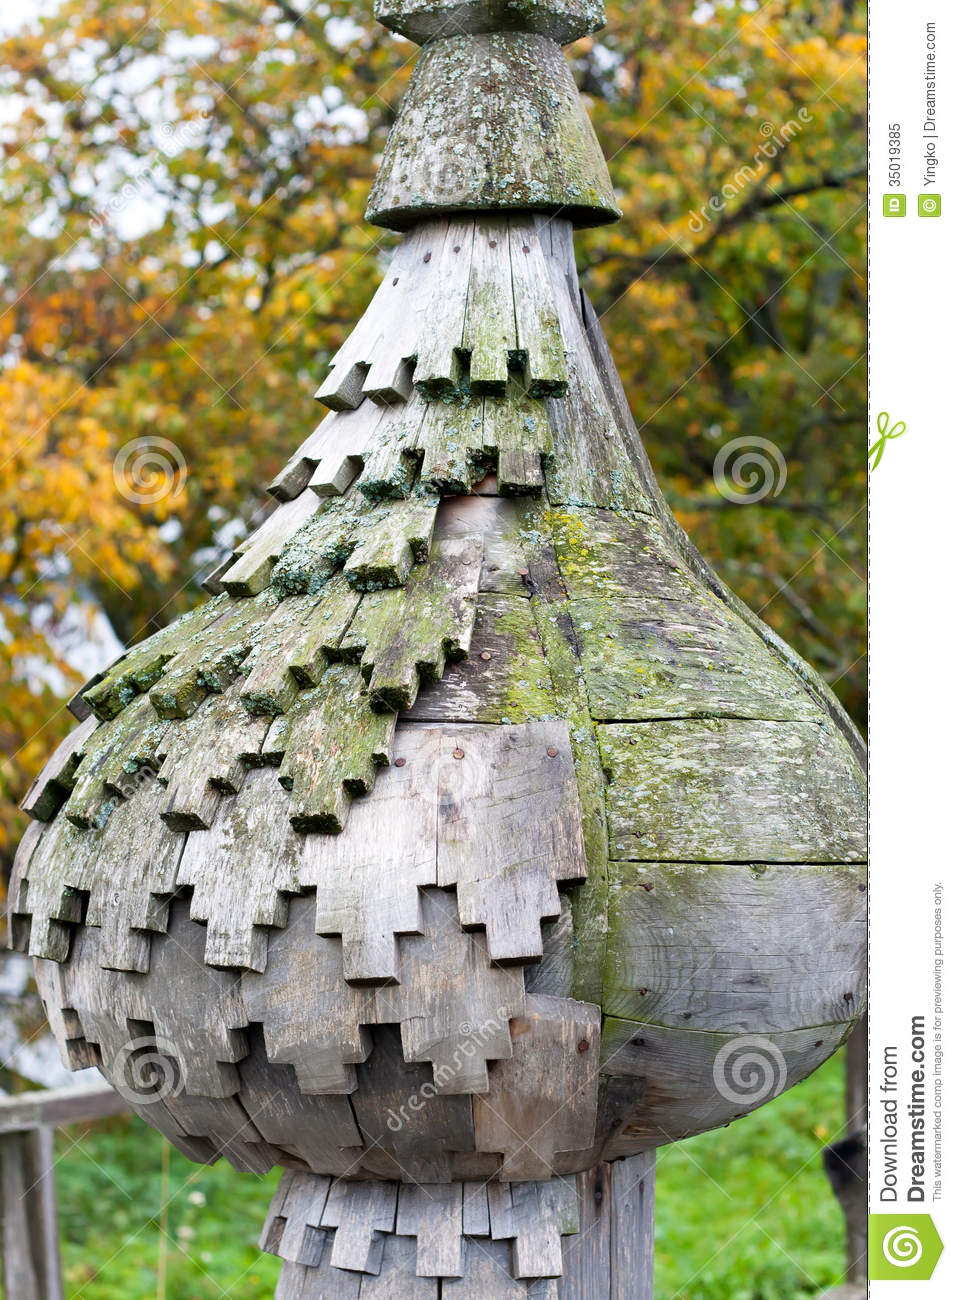 Wooden Onion Dome Royalty Free Stock Photo - Image: 35019385